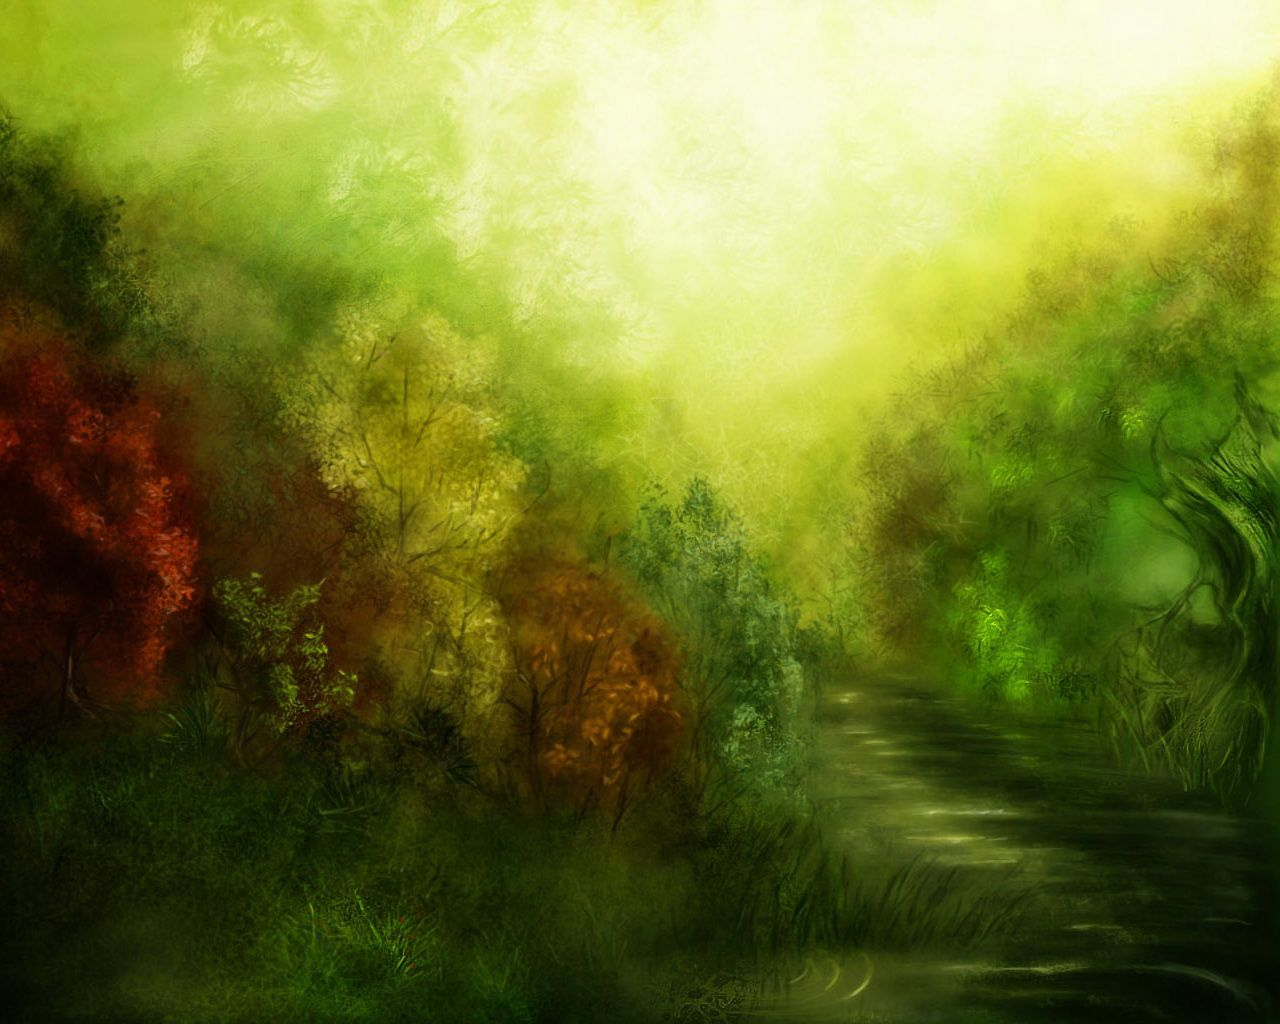 Download Wallpaper Mac Forest - 67c7561a2774a3fdfe97043b7dc67634  You Should Have_43223.jpg